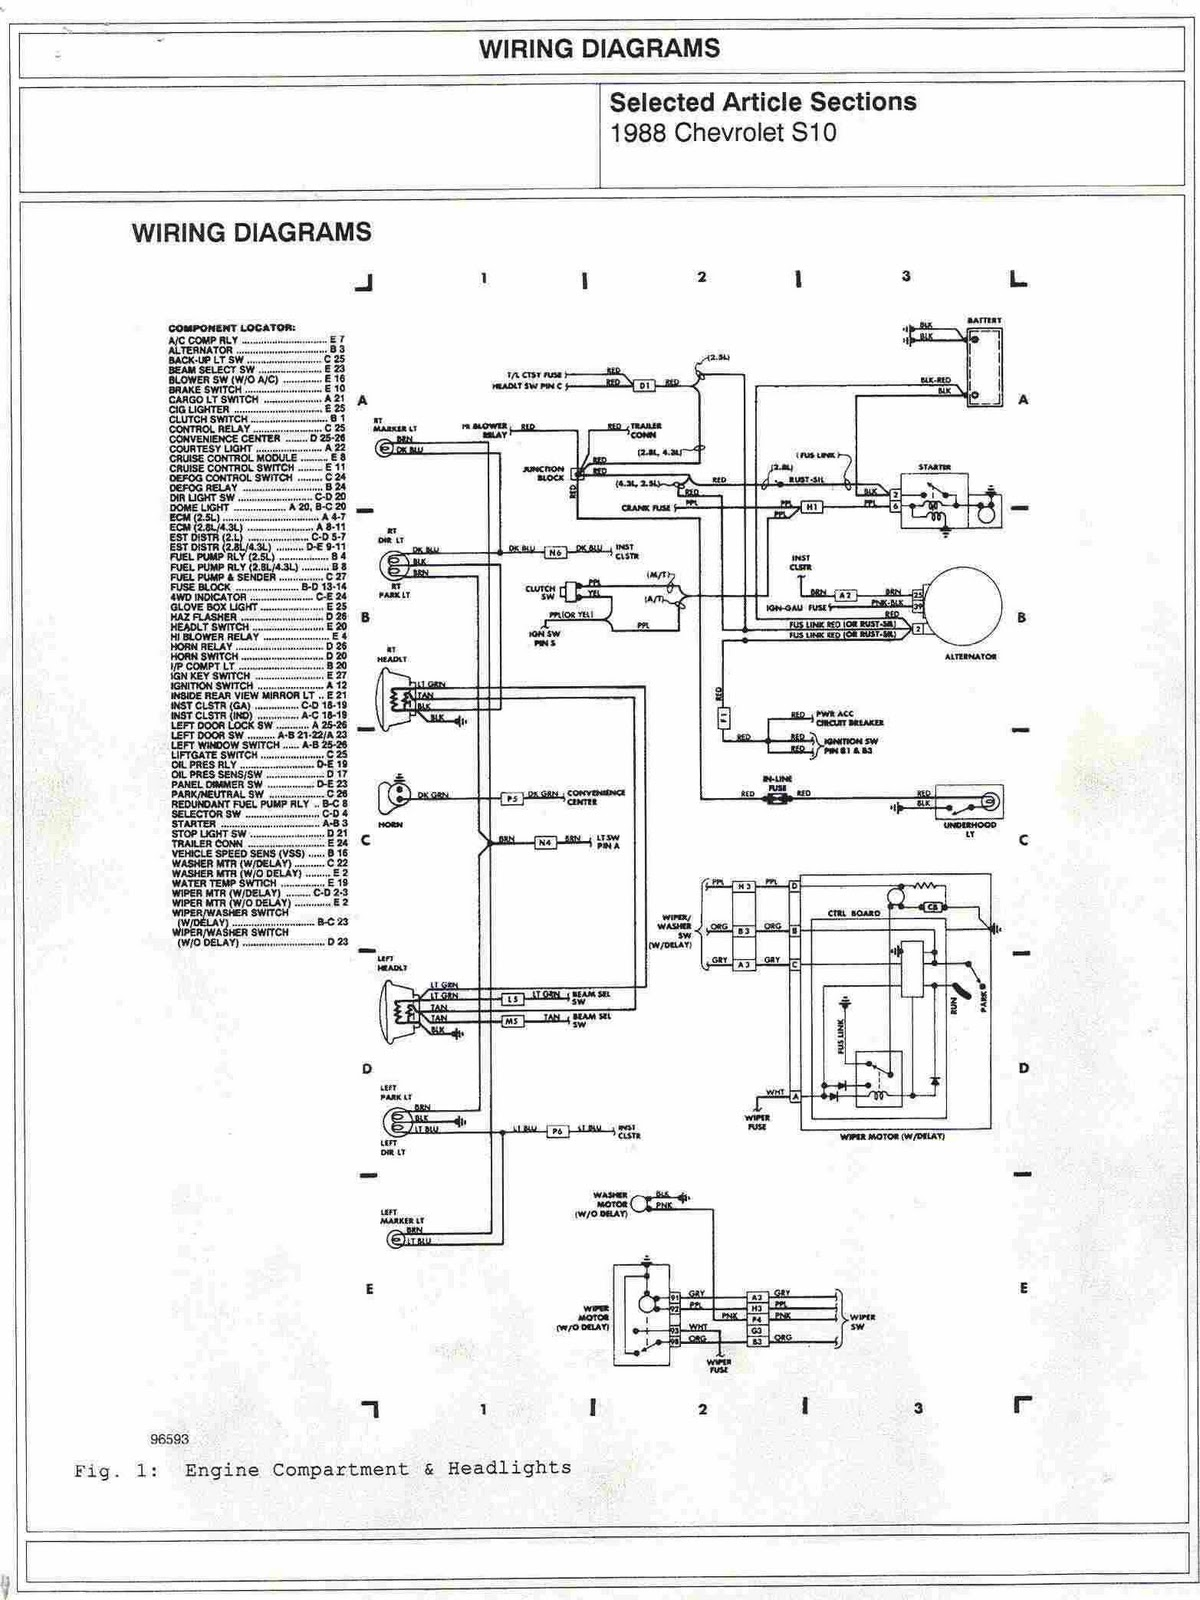 Trailer Wiring Diagram For 1989 Suburban Electrical Chevrolet Truck S10 Fuse Chevy S Fuel Pump The Rh Chapz Tripa Co Silverado Ignition